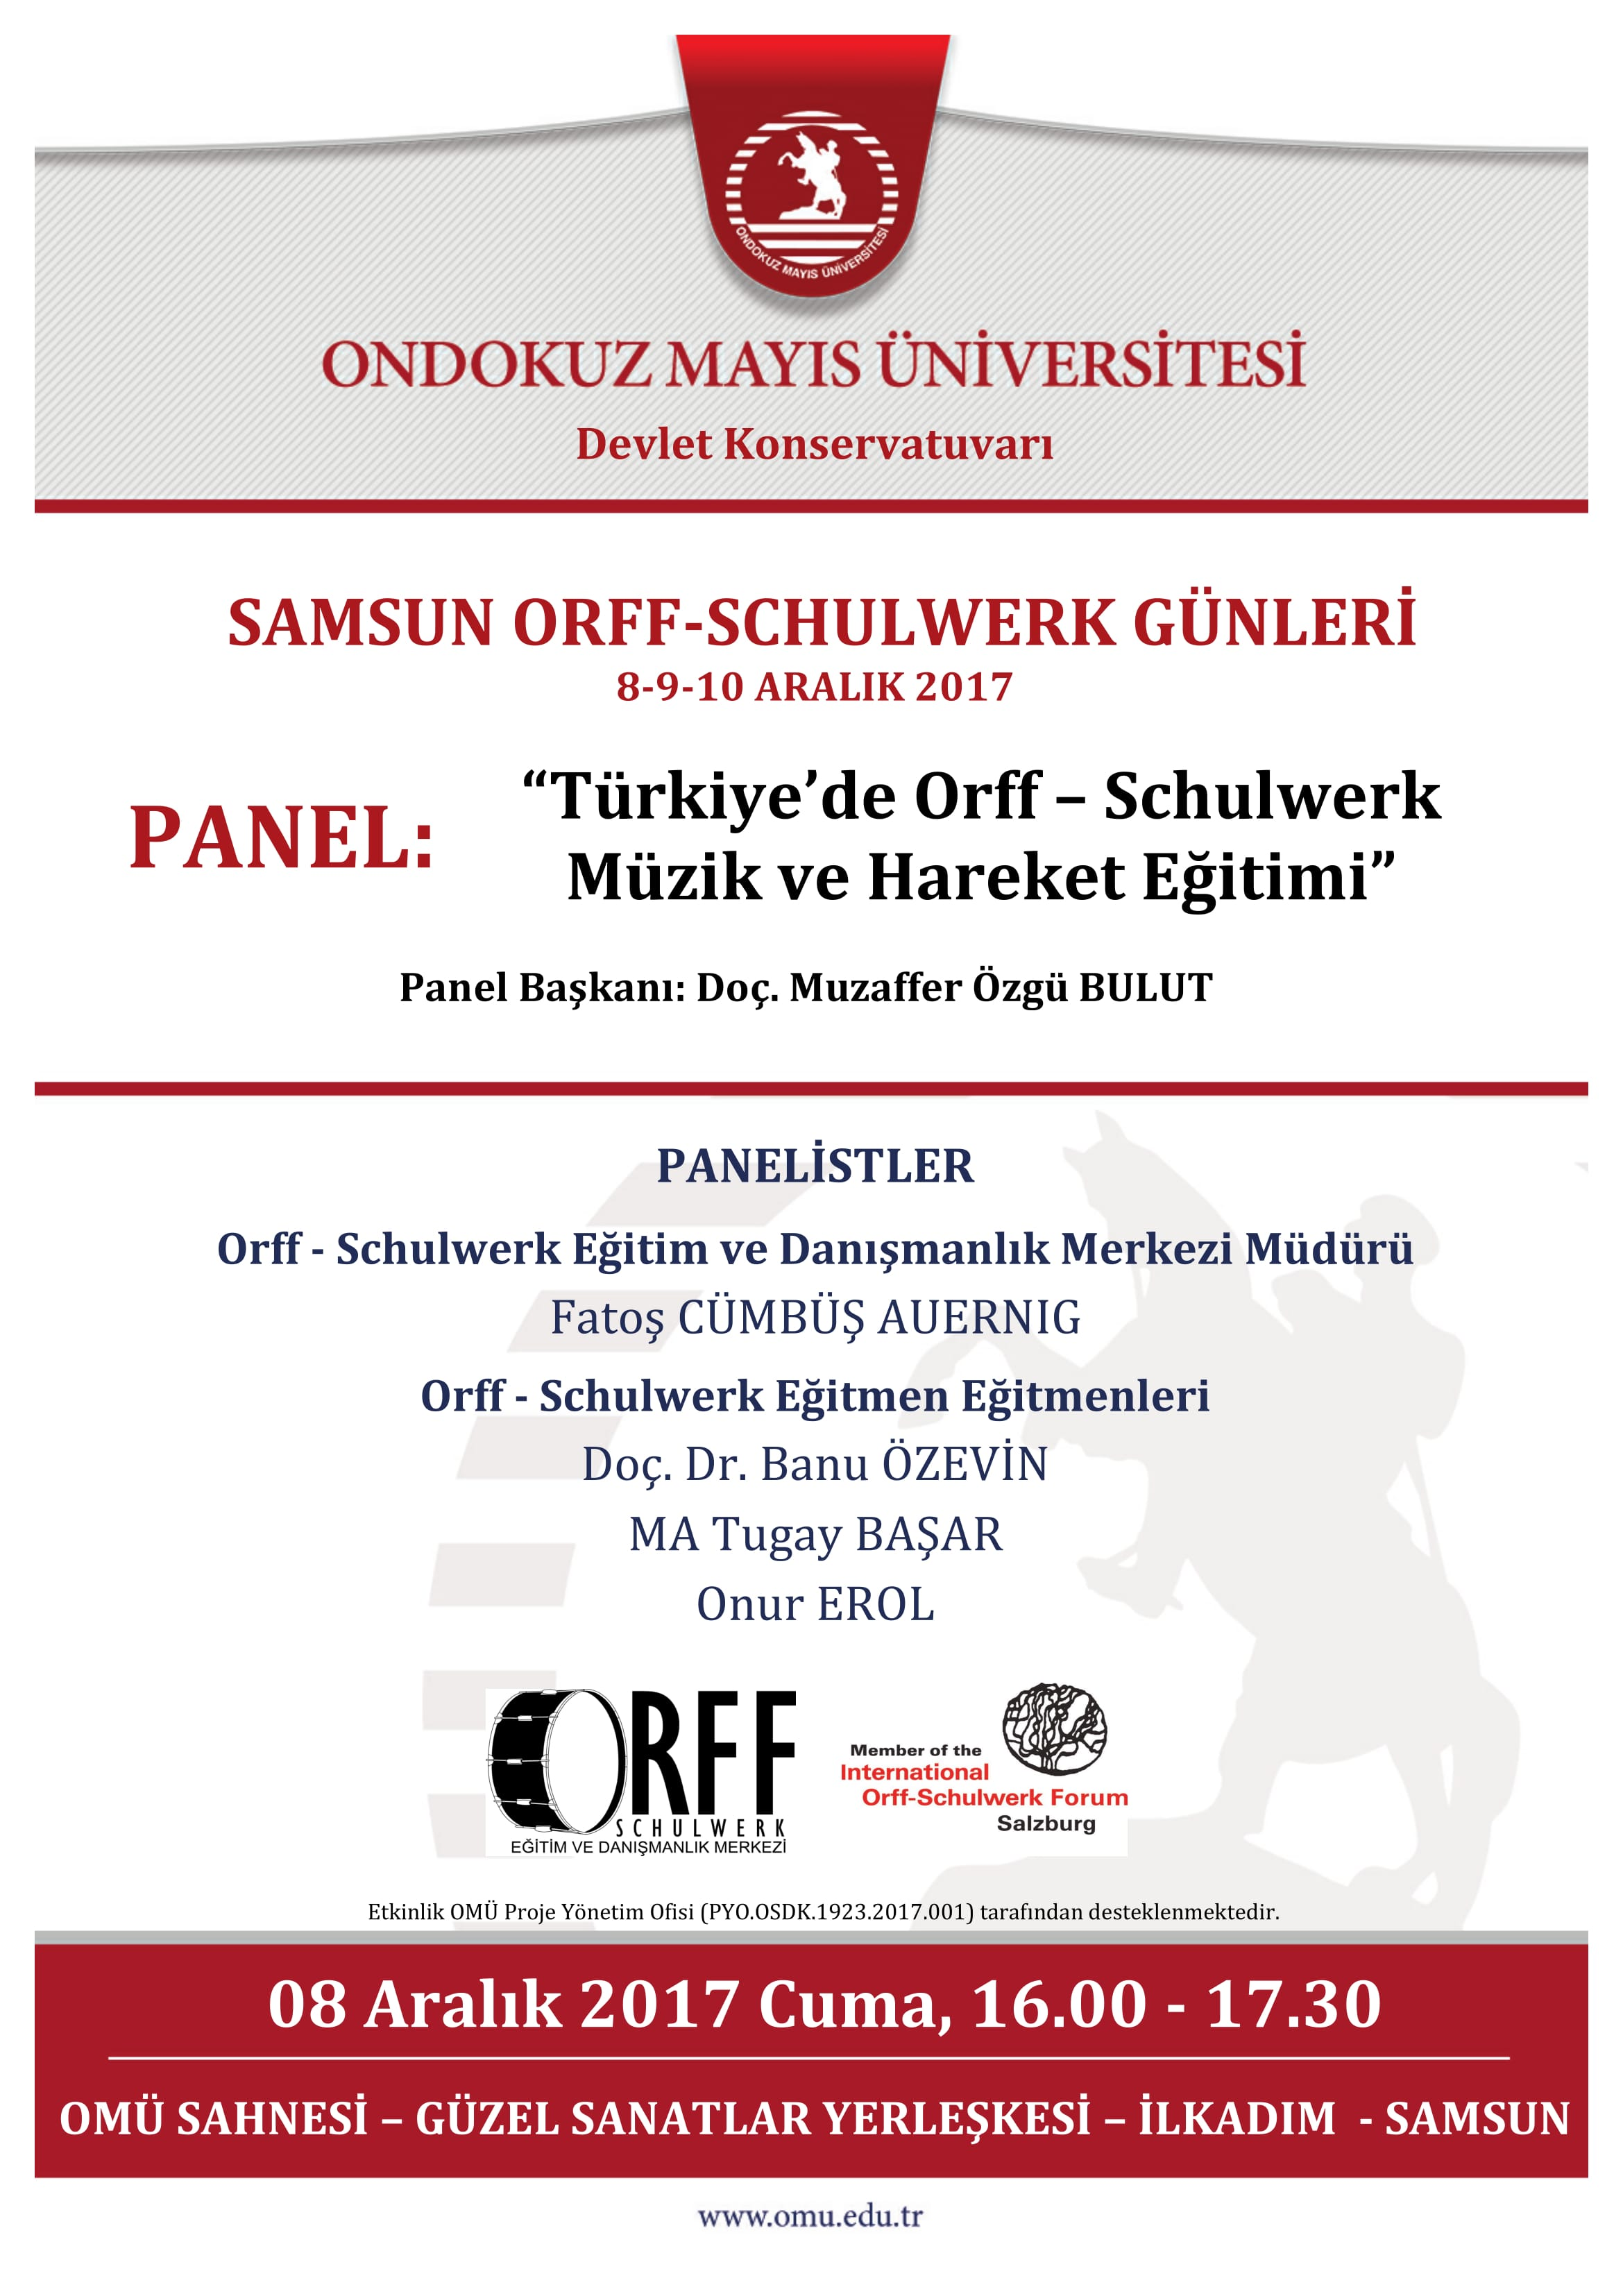 http://www.omu.edu.tr/sites/default/files/samsun_orff_panel_afisi-1.jpg